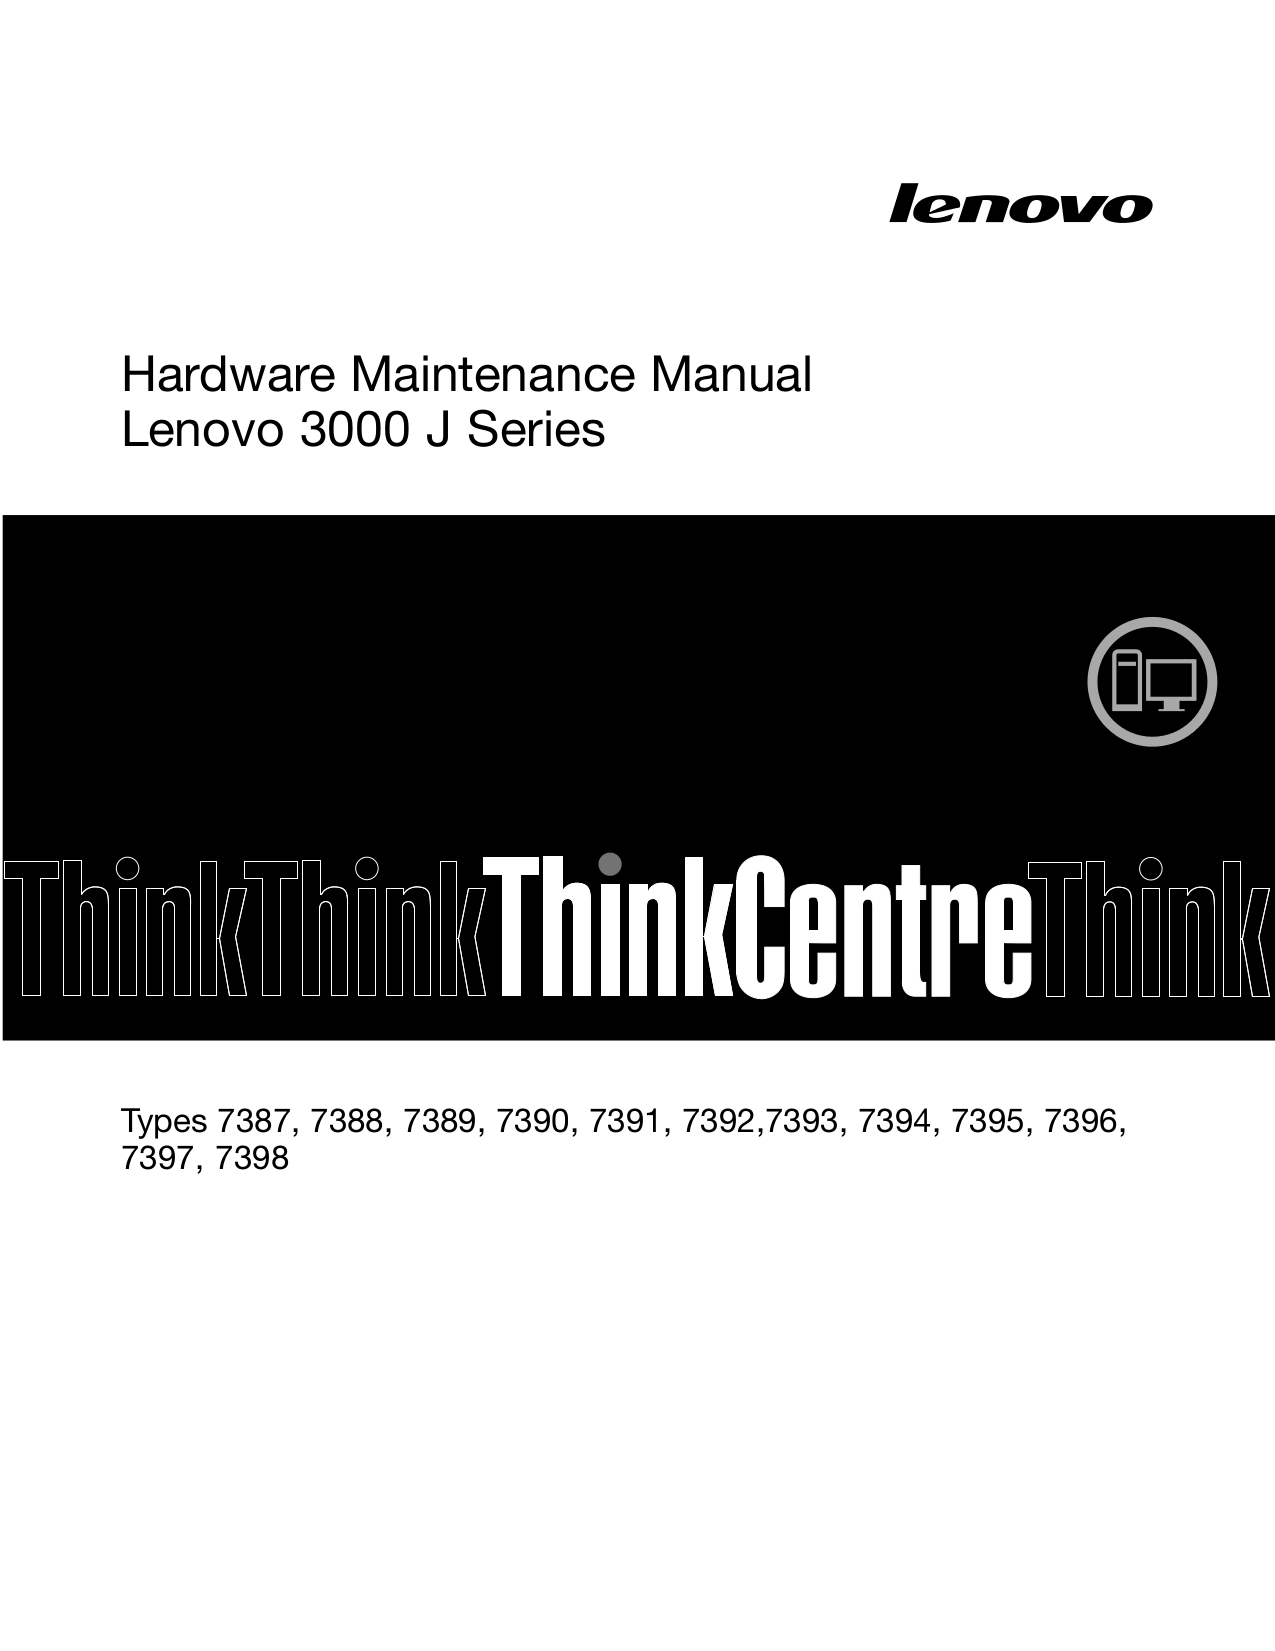 pdf for Lenovo Desktop 3000 J115 7388 manual